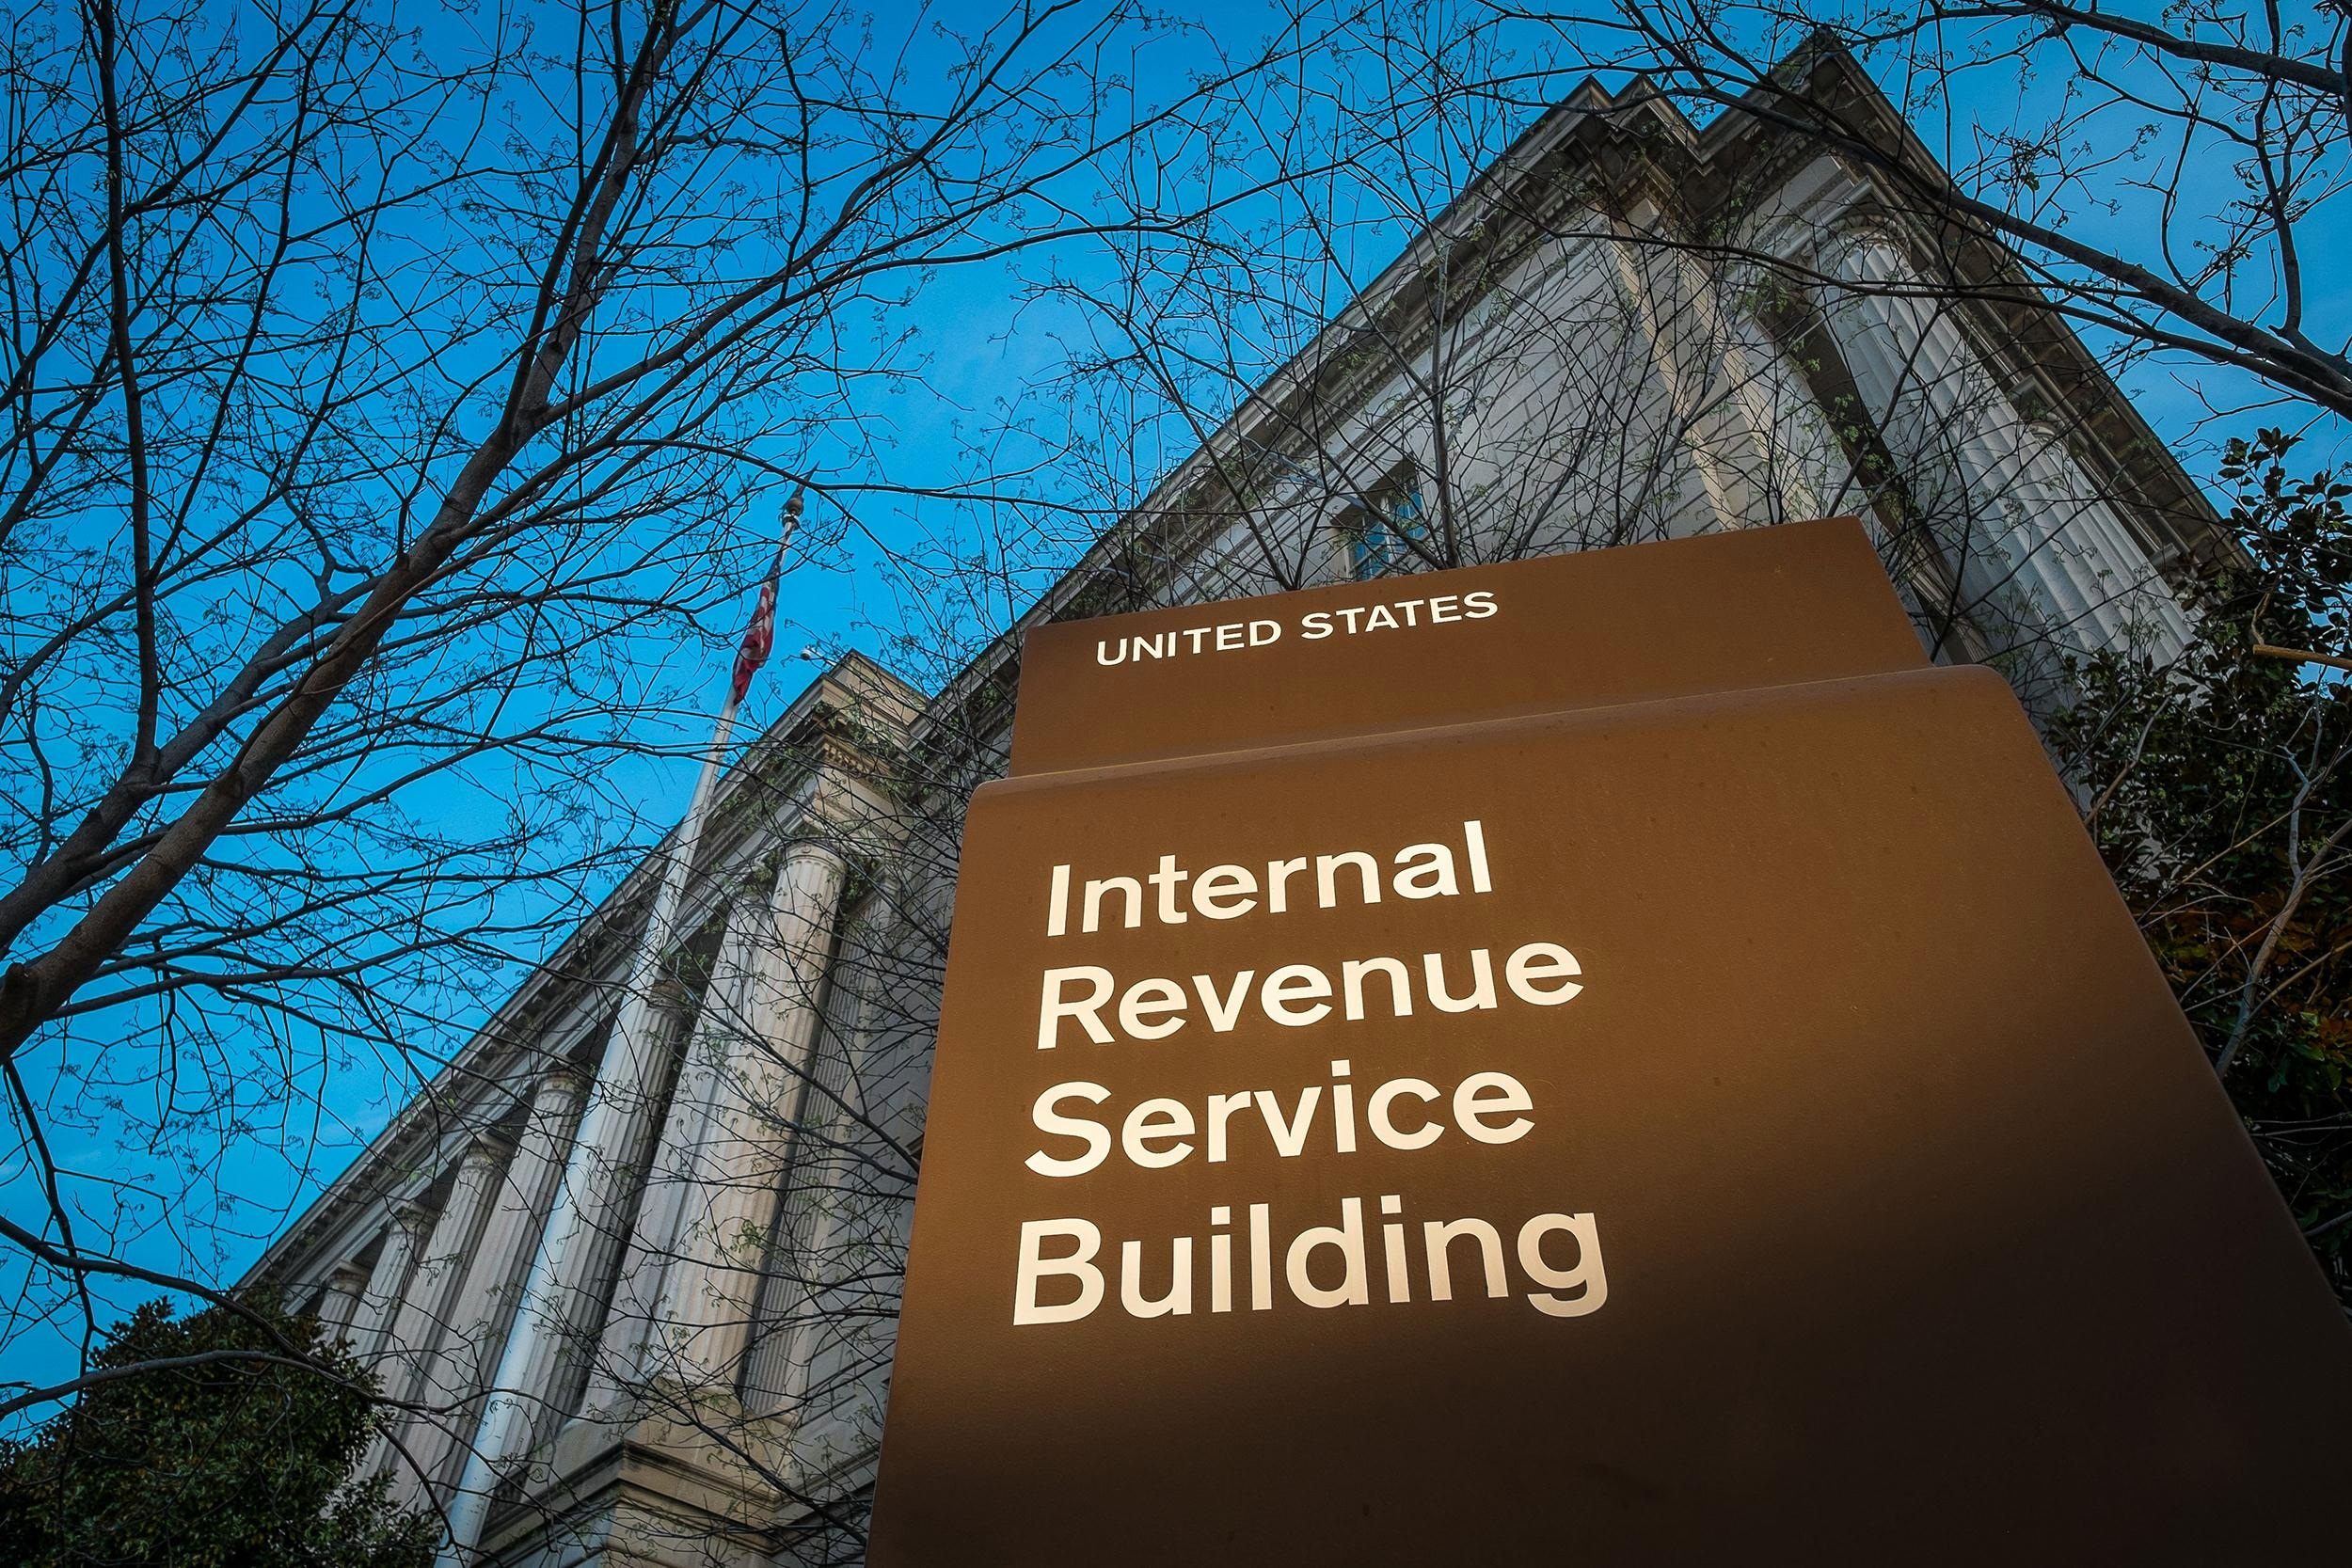 Dont hang on check out irs for tax related information irs building falaconquin